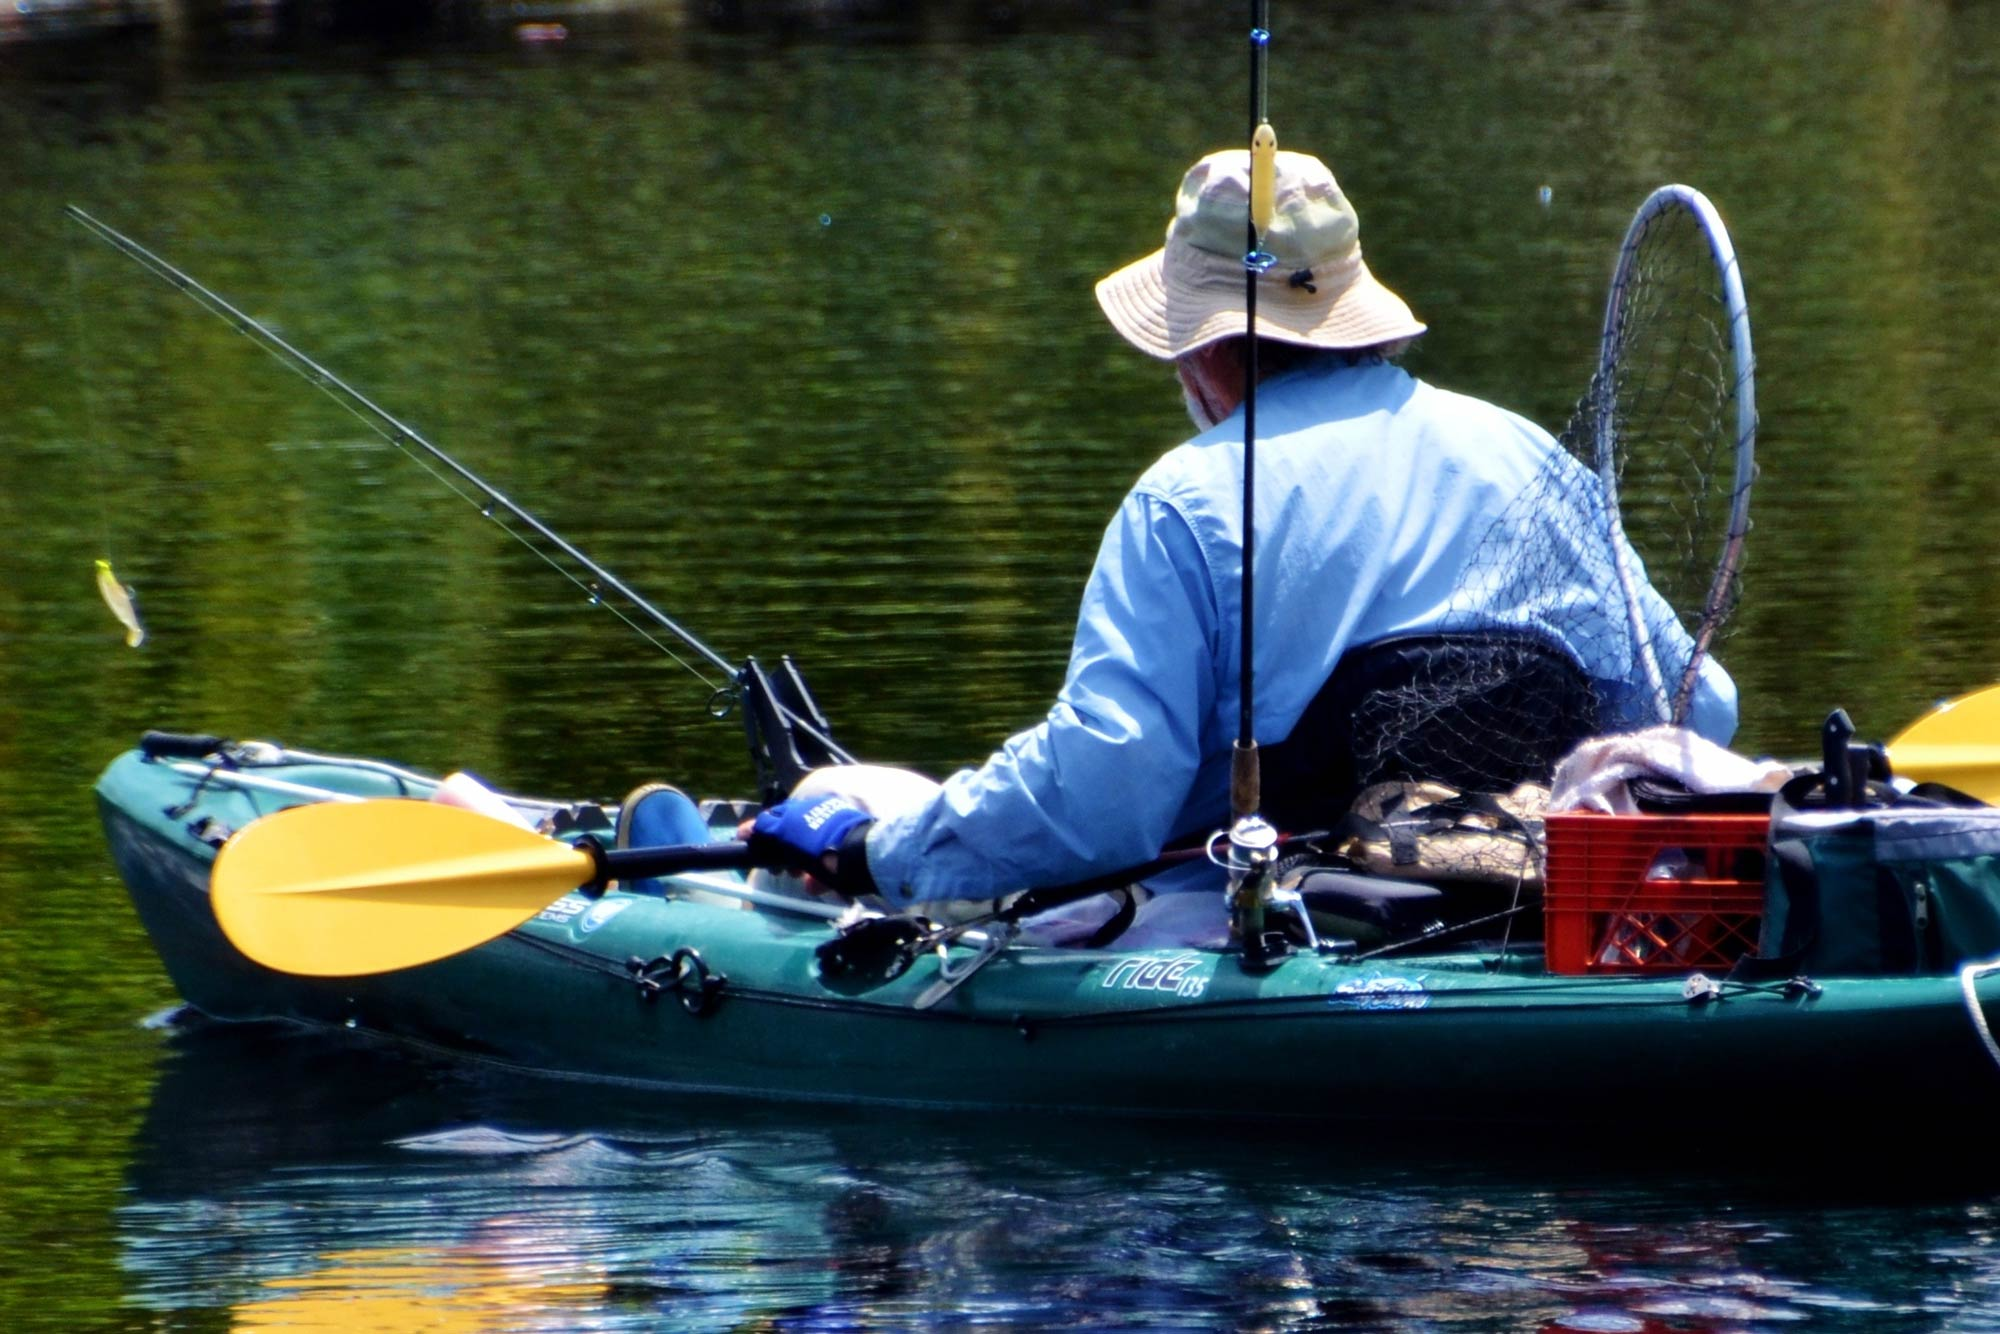 A kayak angler in a cap, with his back to the camera, sitting in his kayak loaded with fishing equipment